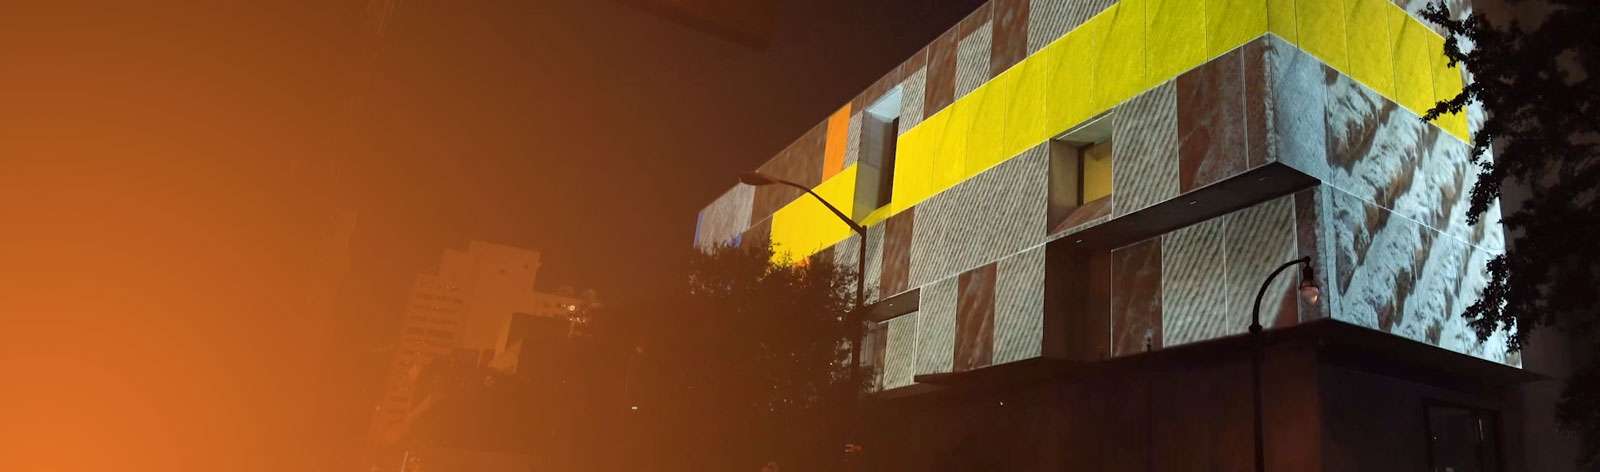 building-square-projection-mapping-orange-2